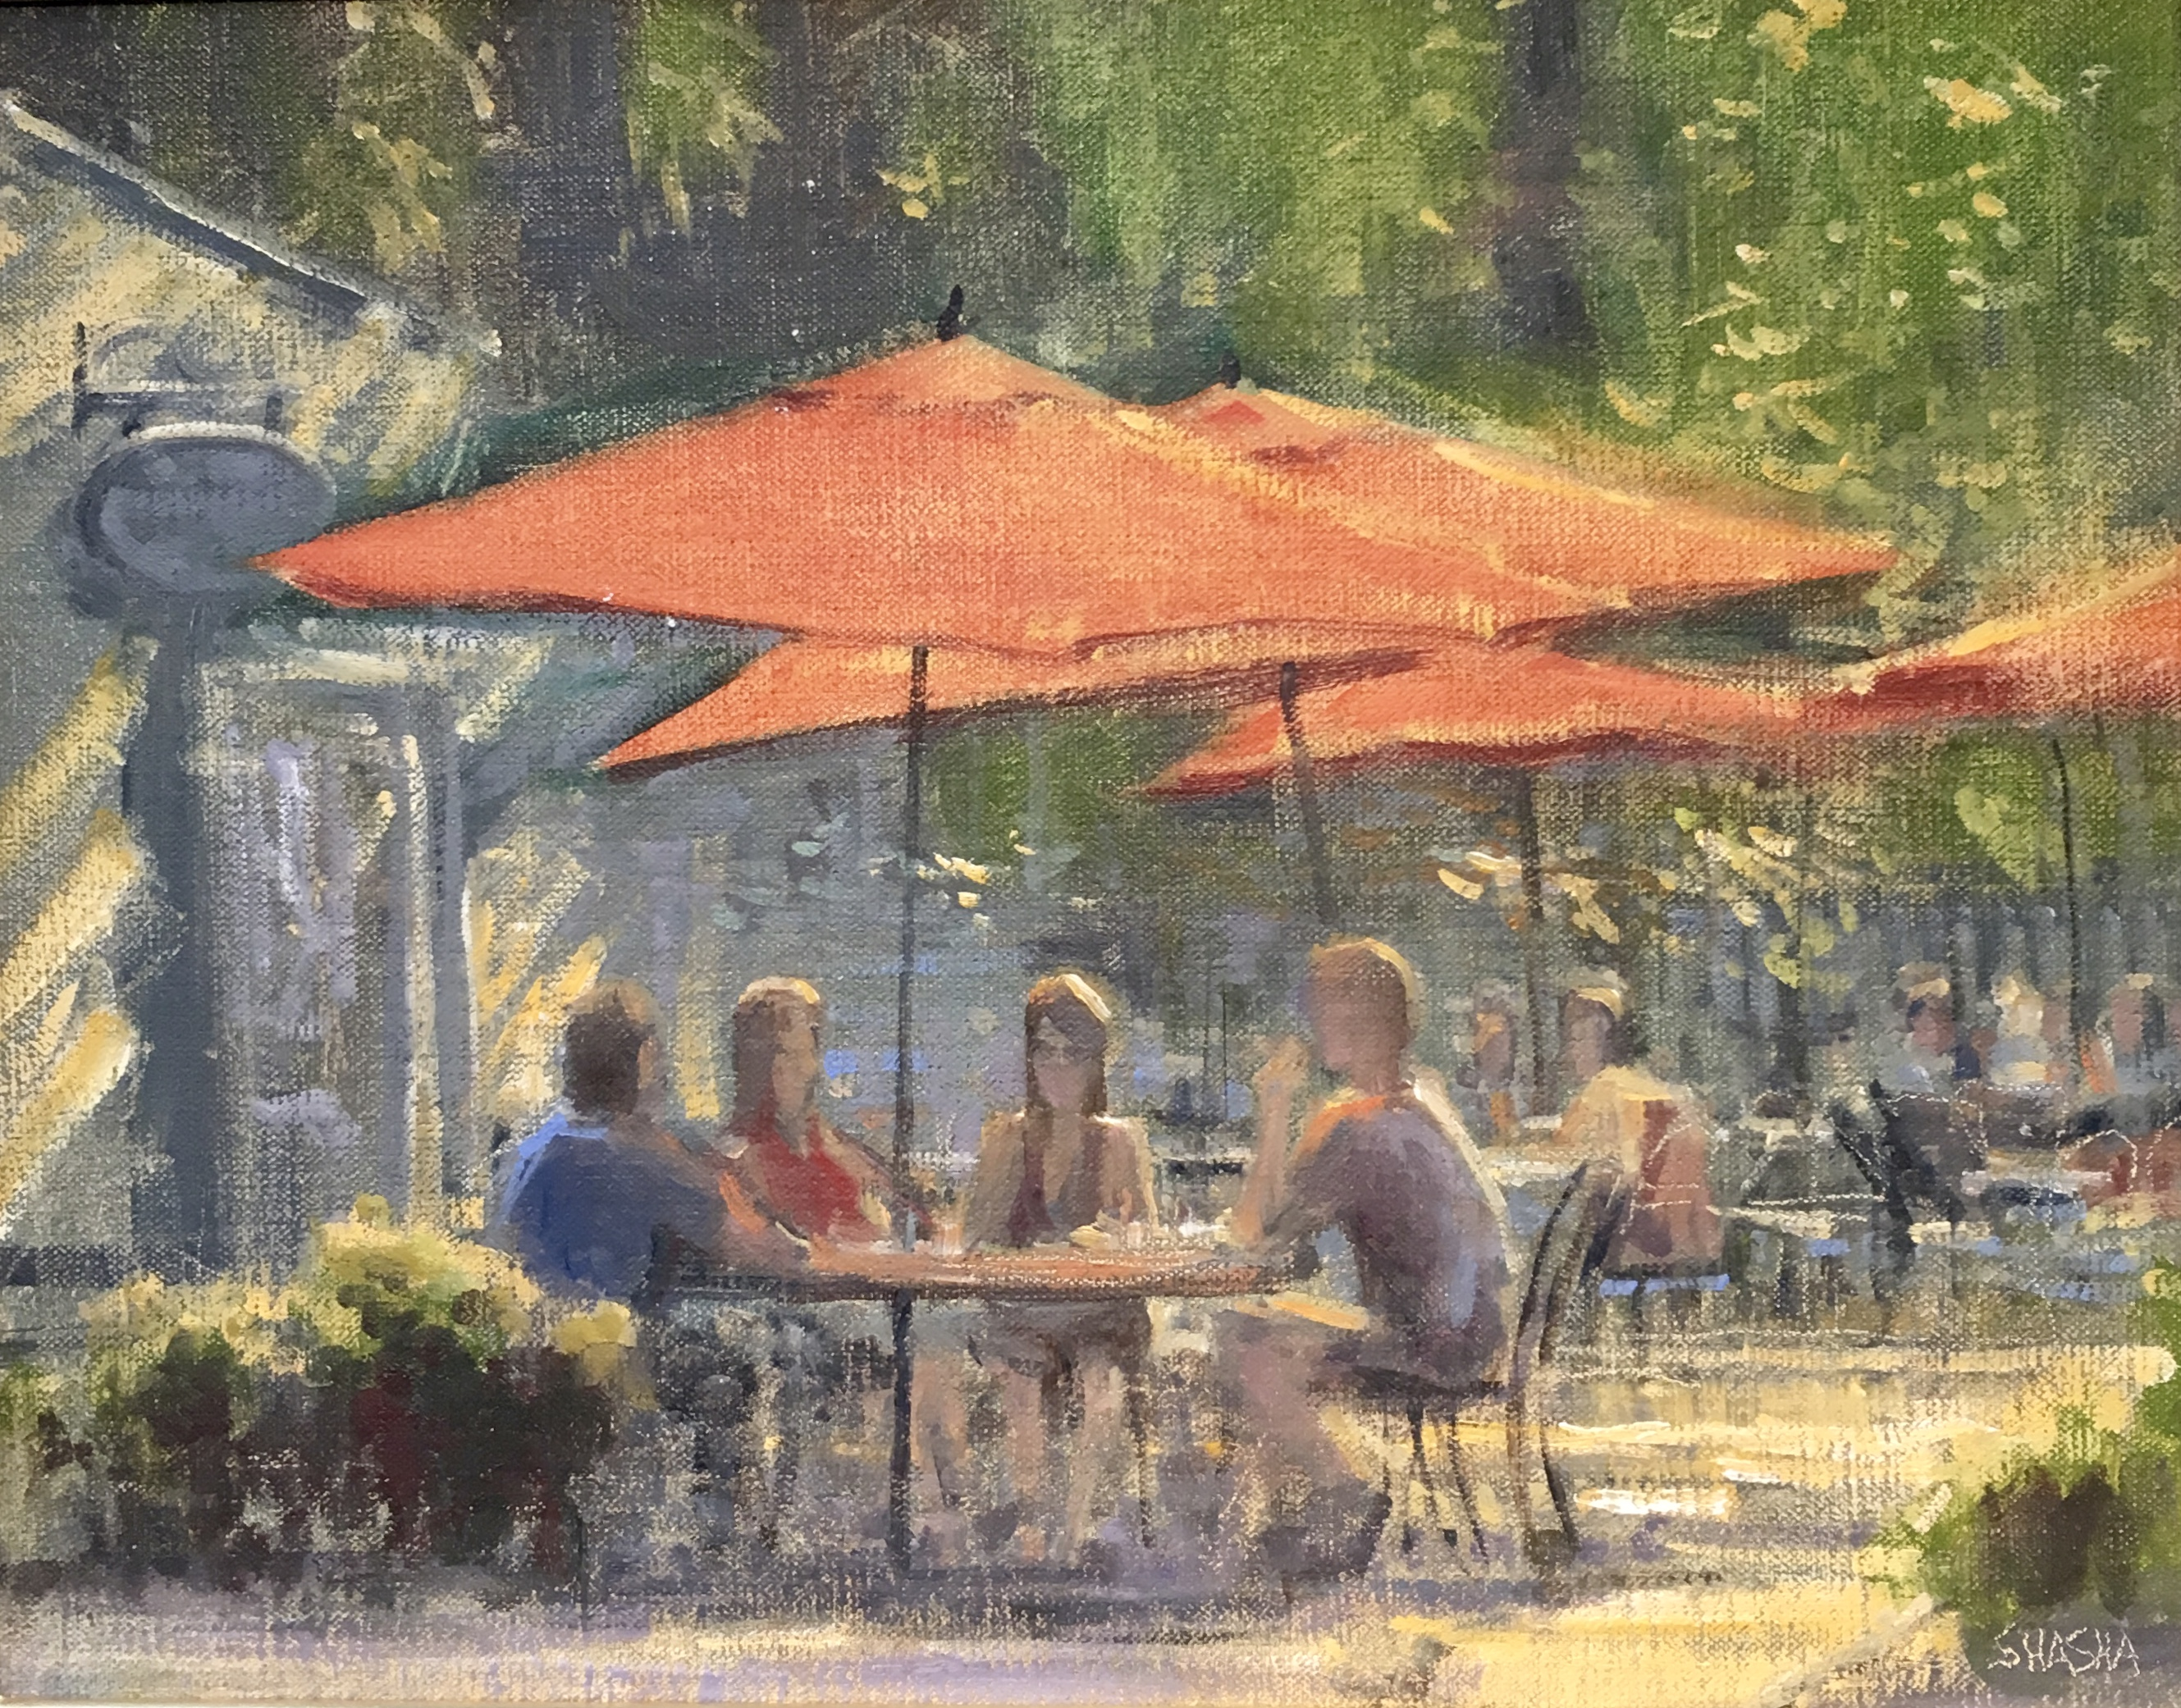 Patio Lunch-Shasha, oil 11x14 $1800